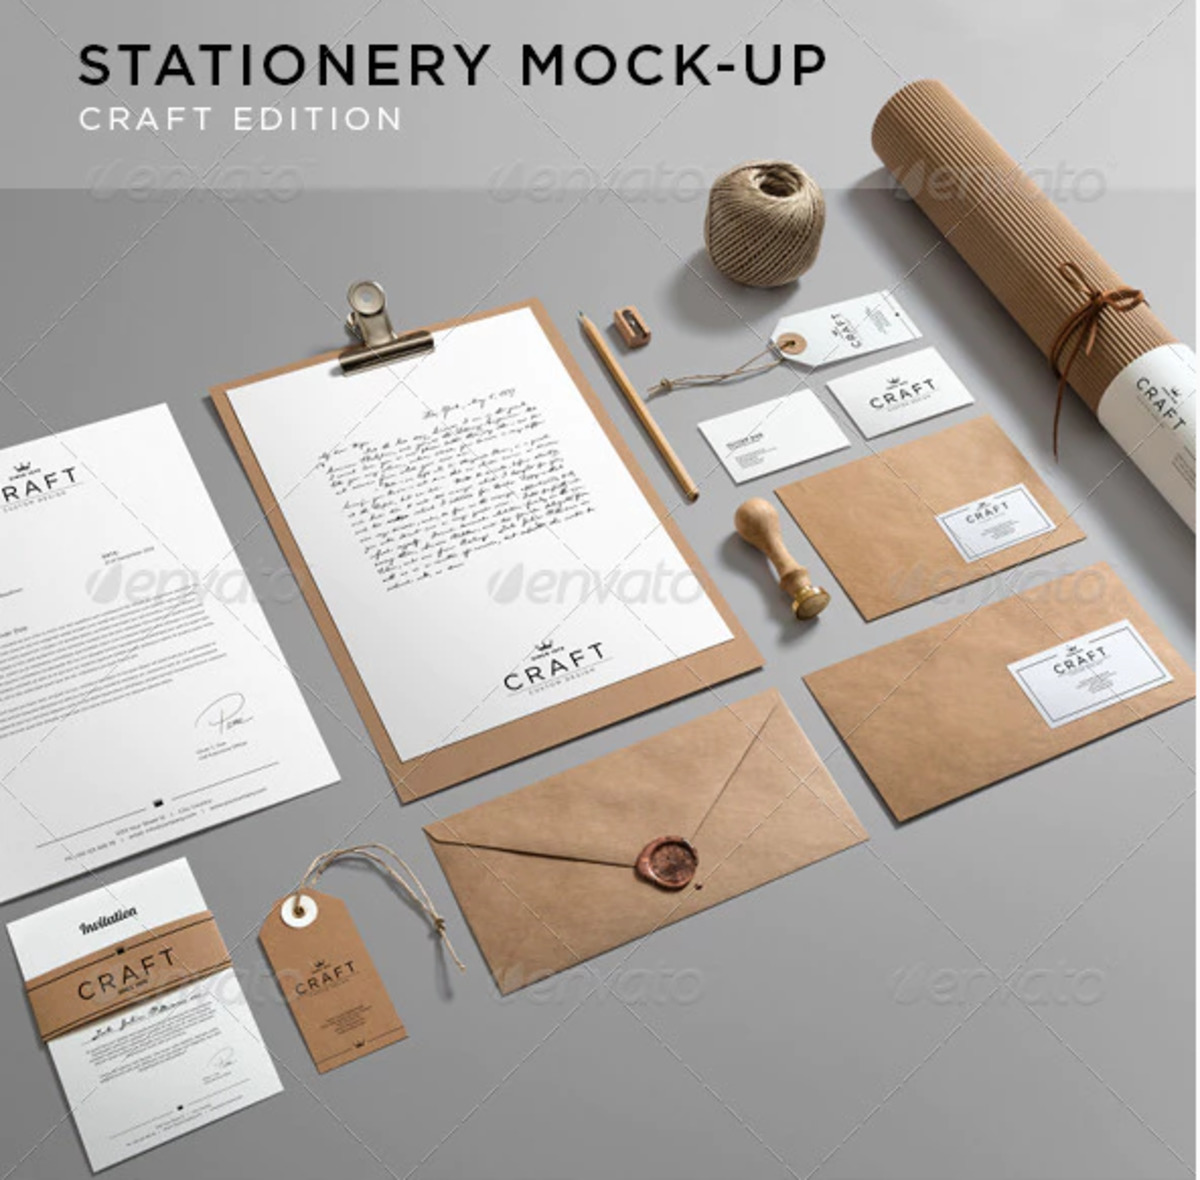 Stationery Branding PSD Mockup Craft Edition